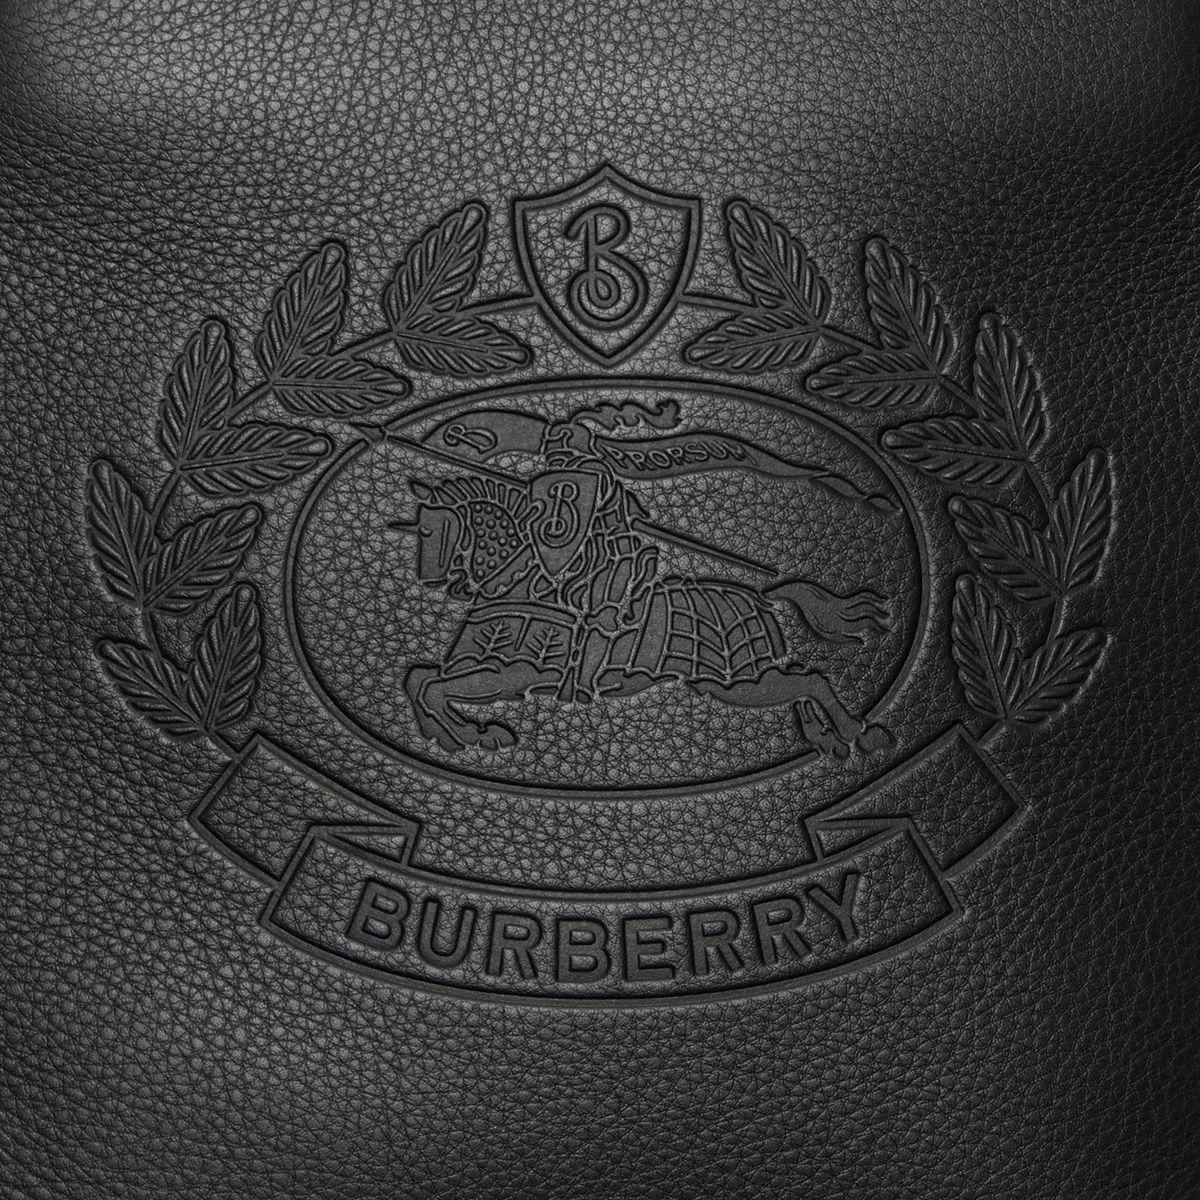 7767a9320f99 Burberry - Black Small Embossed Crest Leather Crossbody Bag for Men - Lyst.  View fullscreen